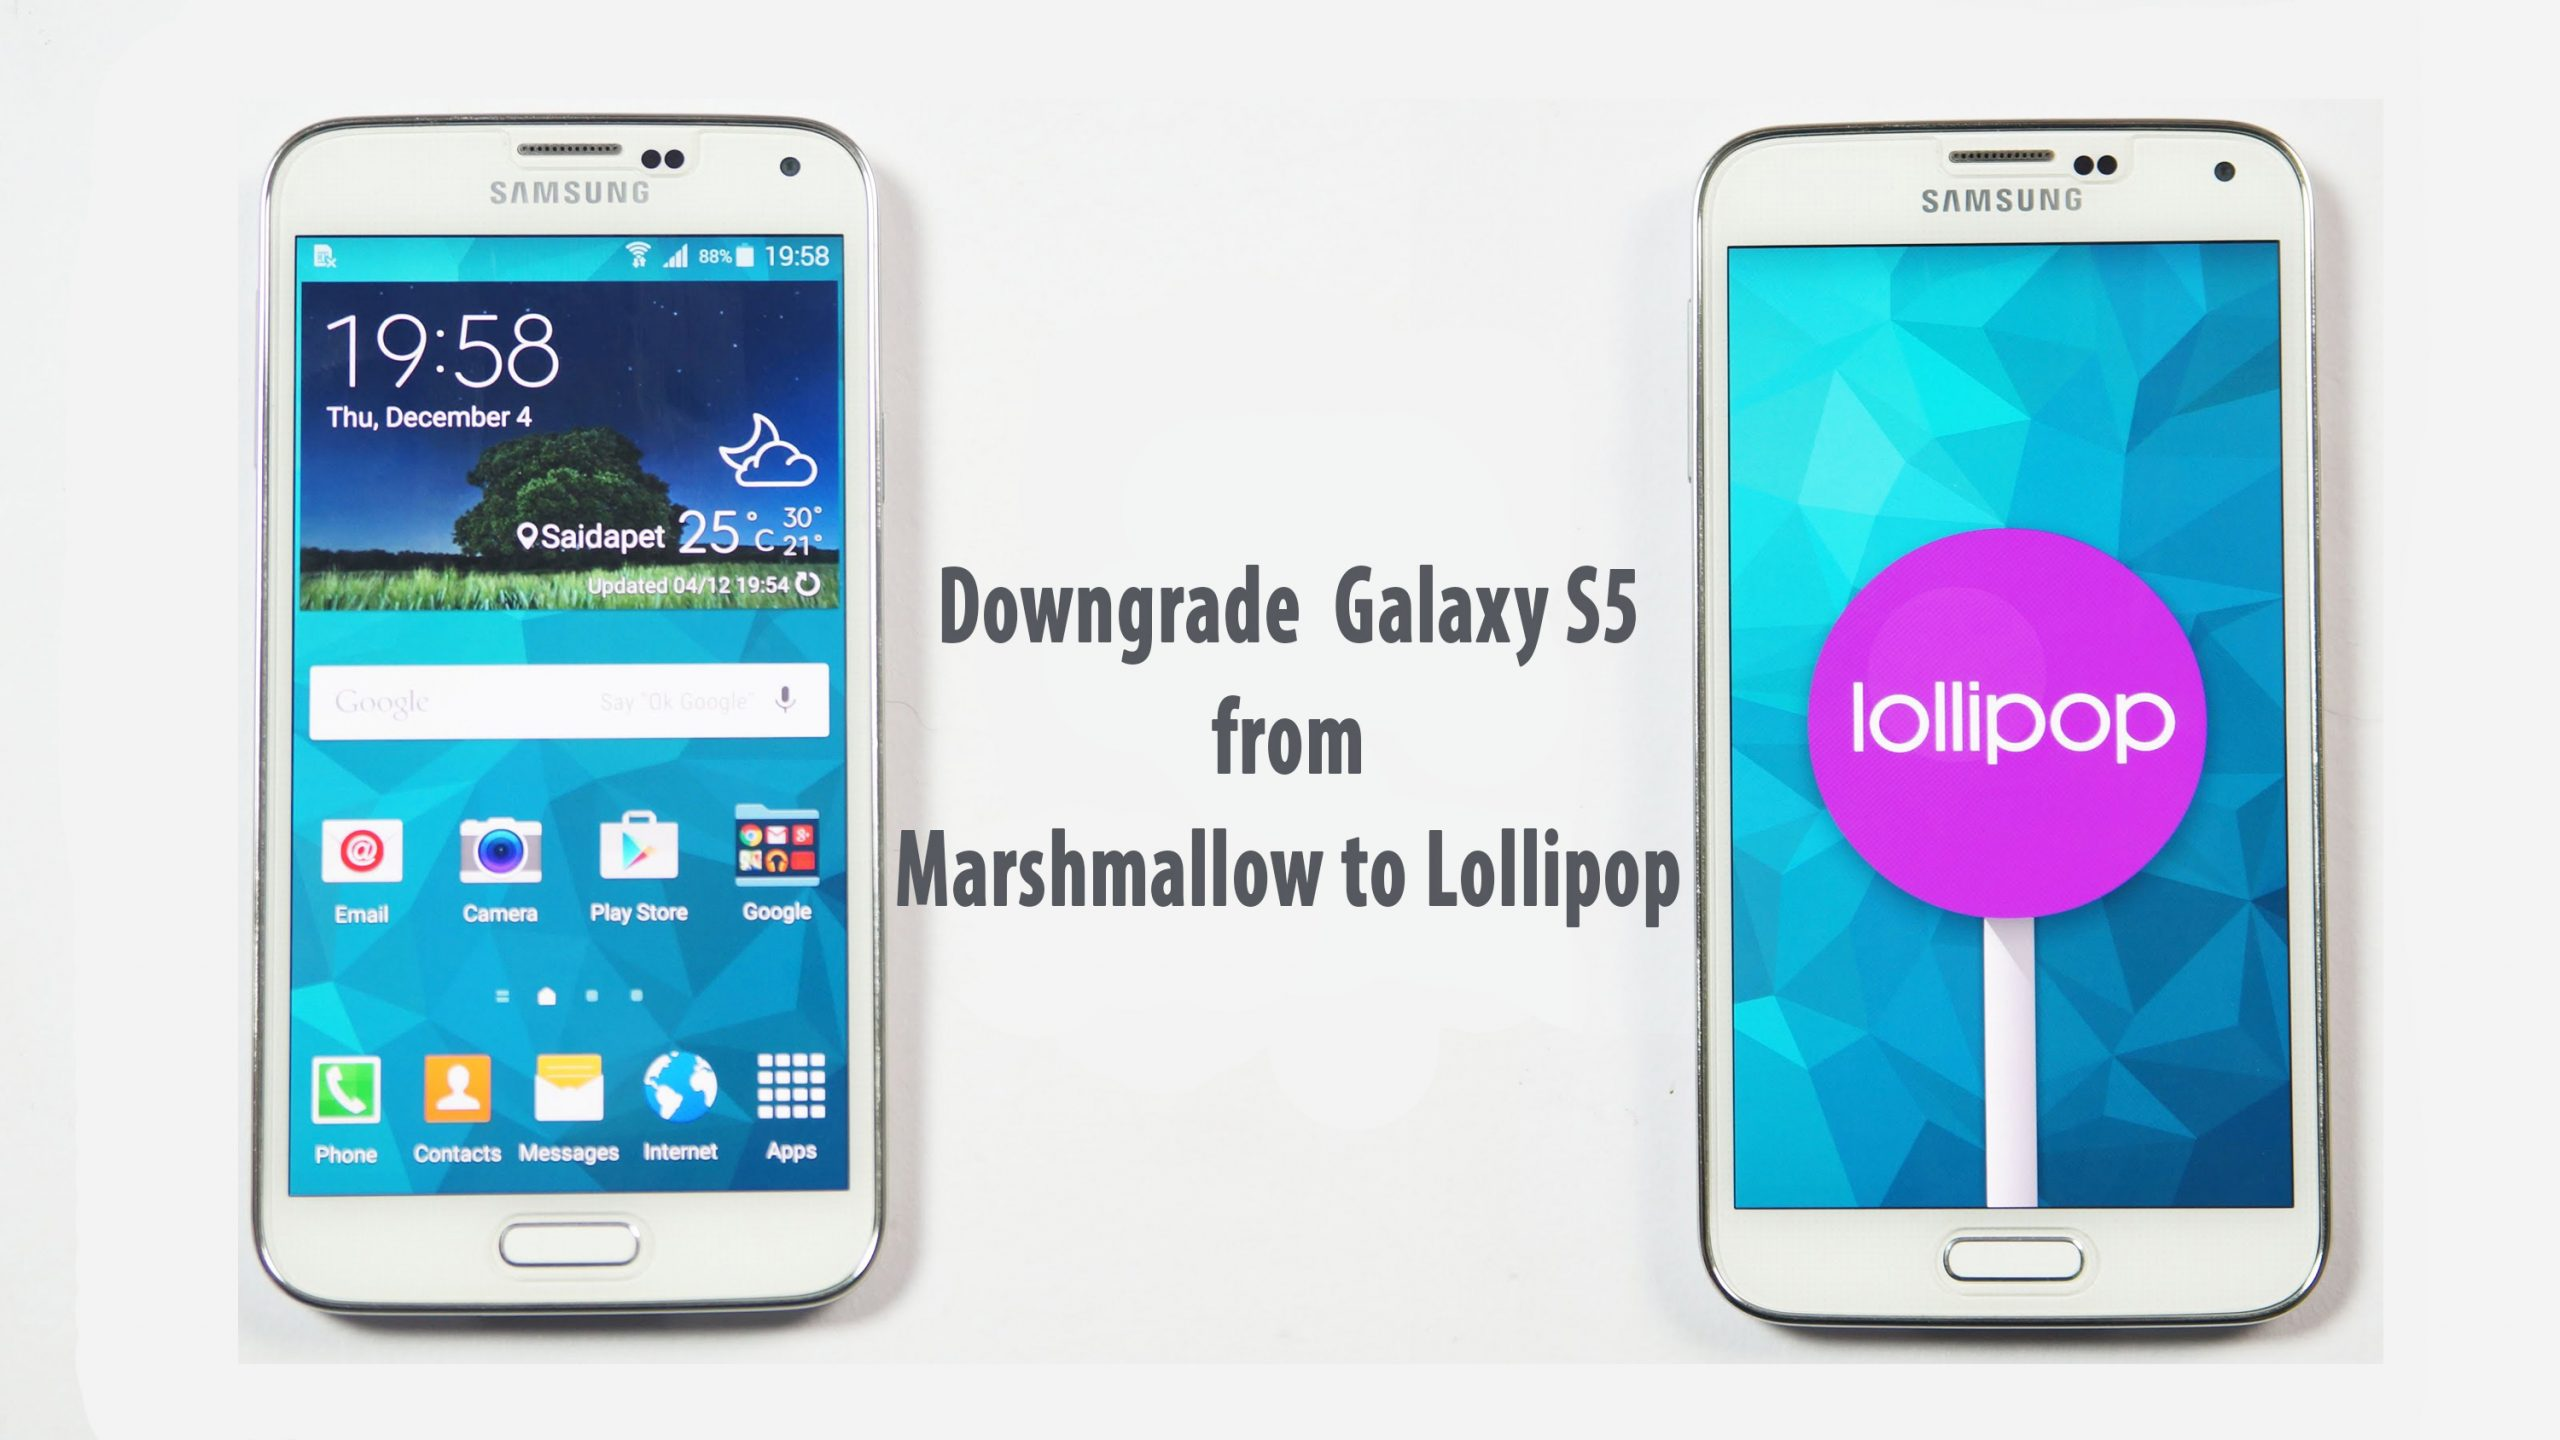 Galaxy-S5-downgrade-Lollipop-scaled.jpg